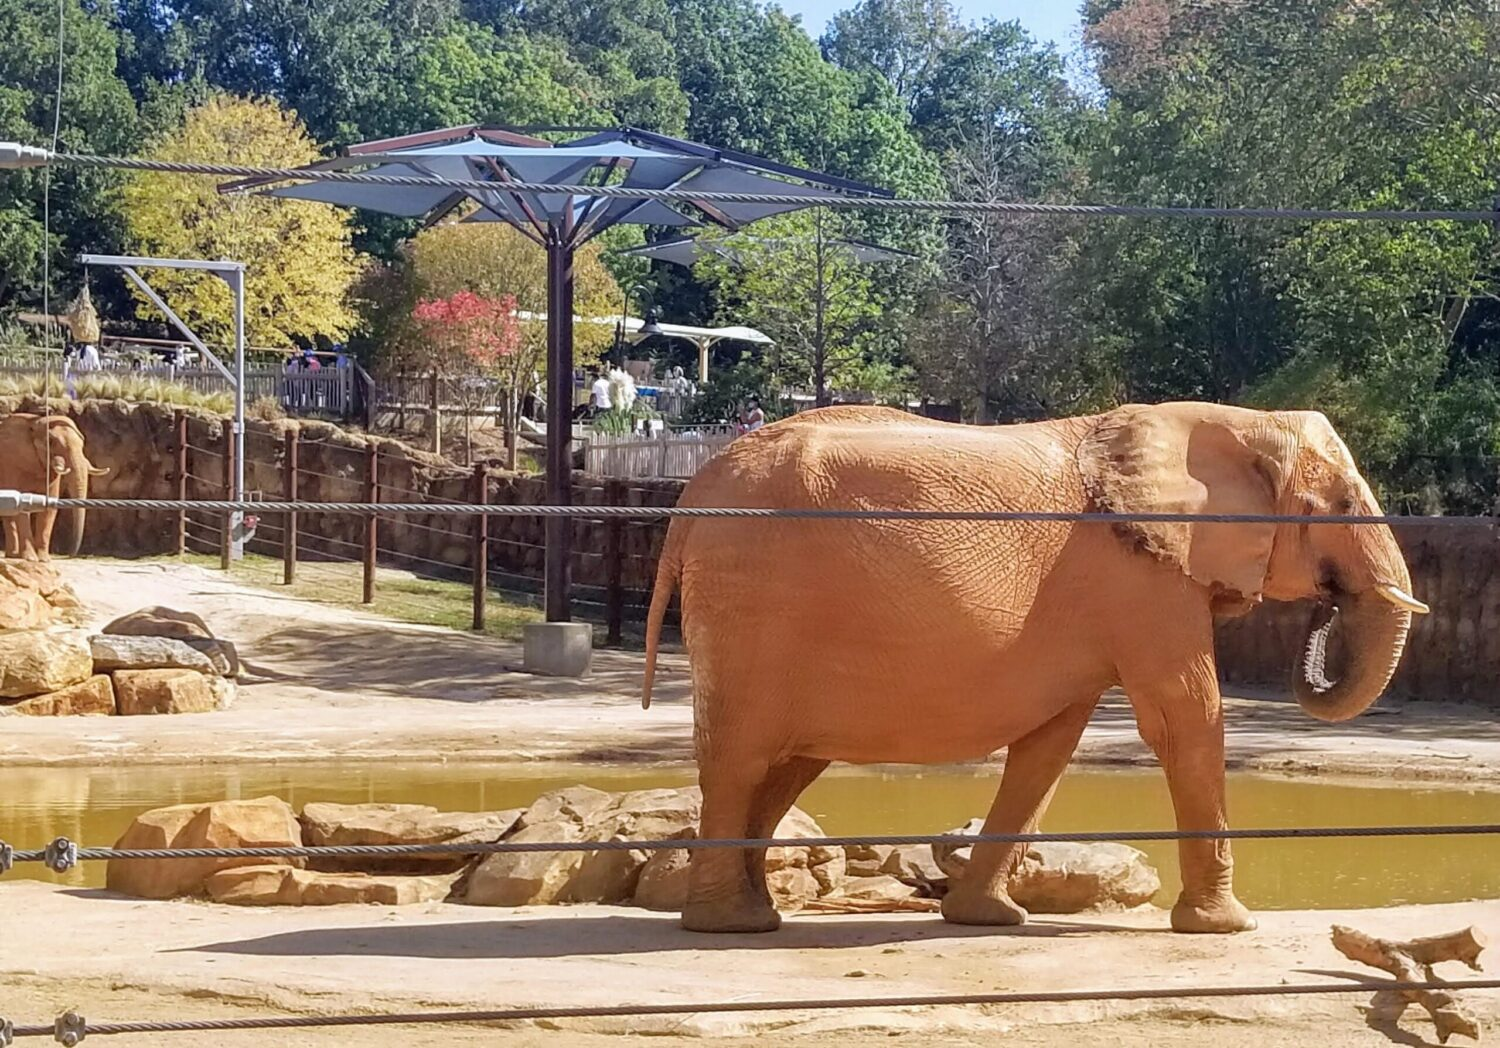 An elephant at Zoo Atlanta, one of the best things to do in Atlanta with kids